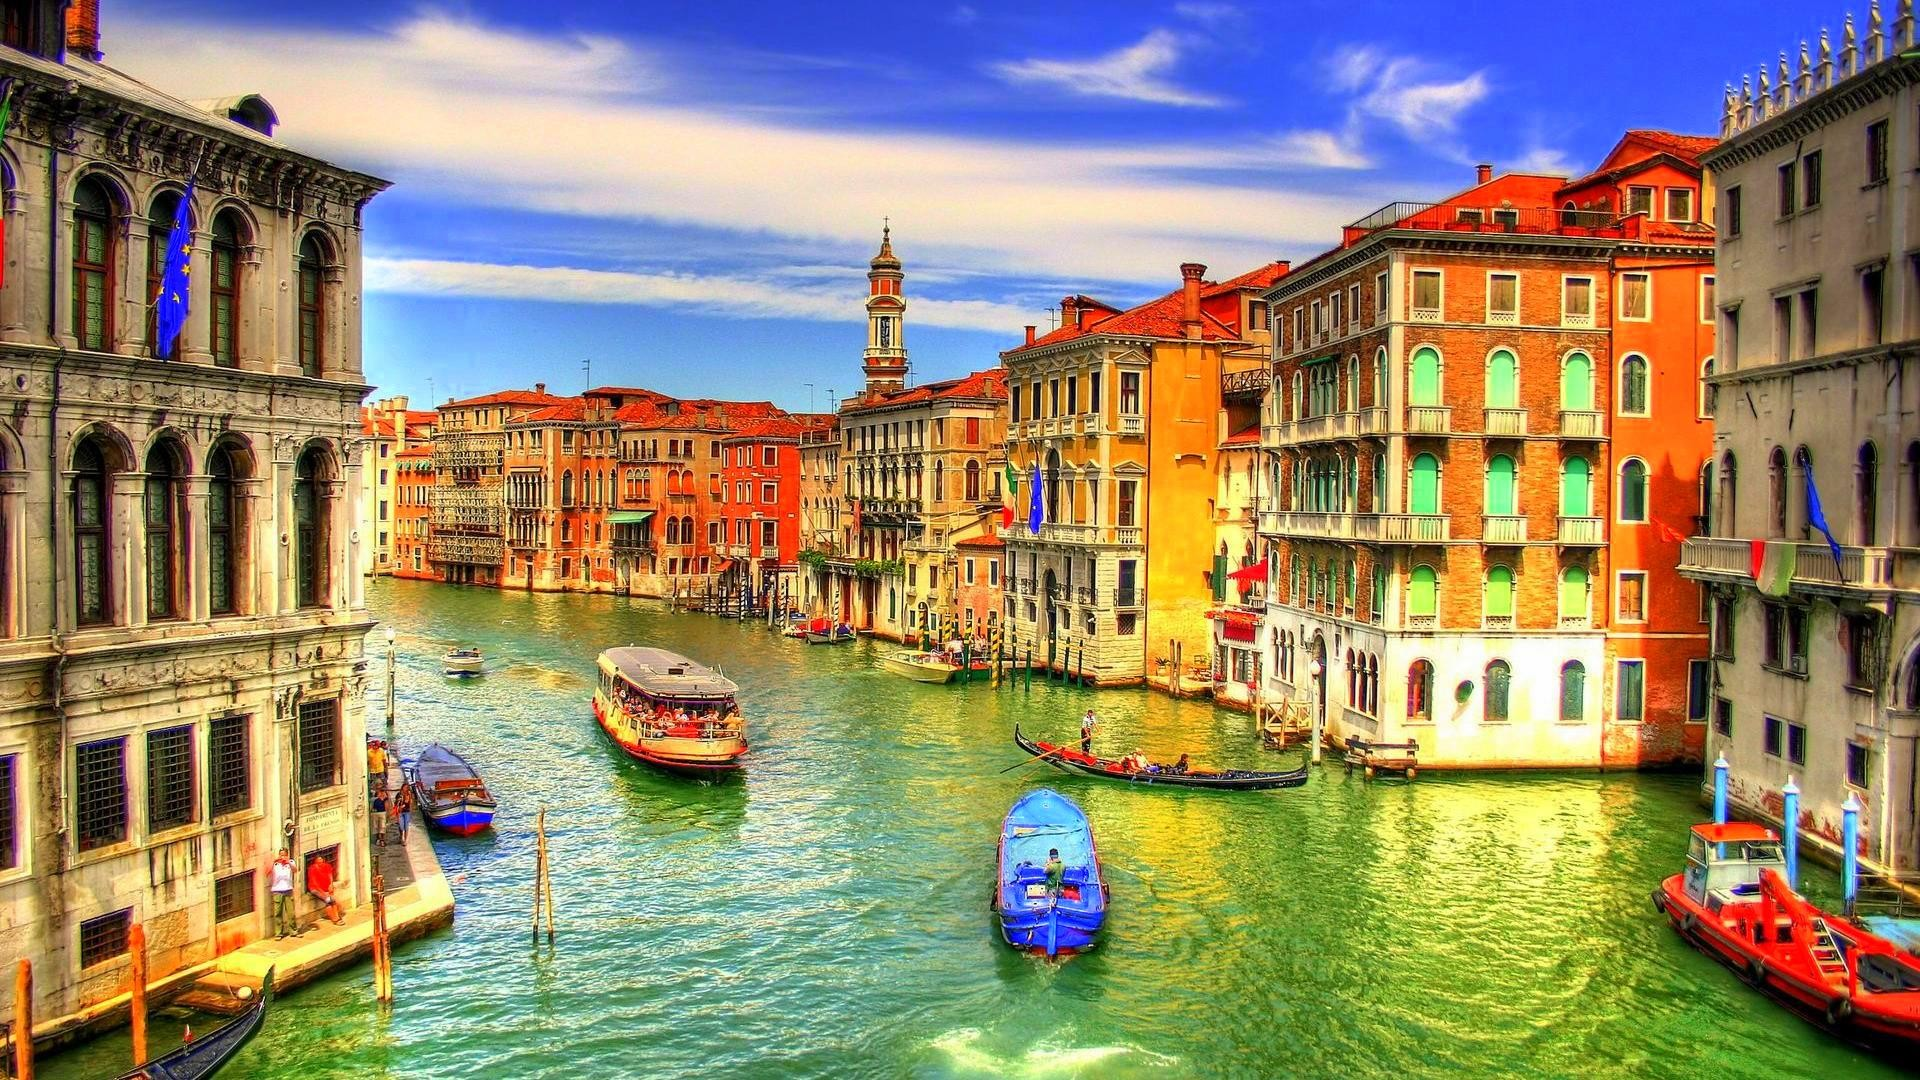 1920x1080 Venice City World Beautiful places HD Wallpapers